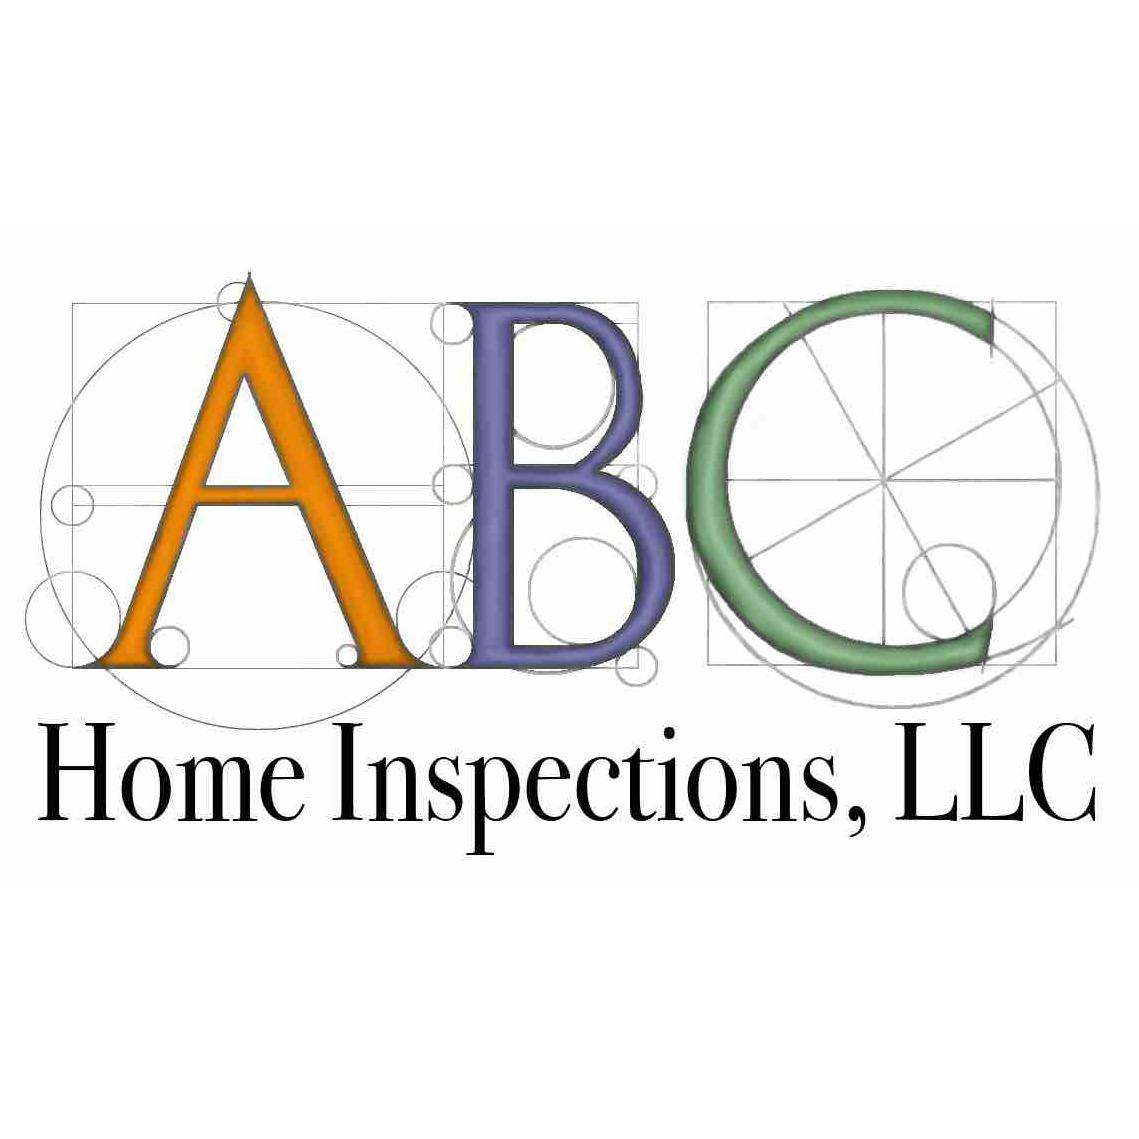 Abc Home Inspections, Llc